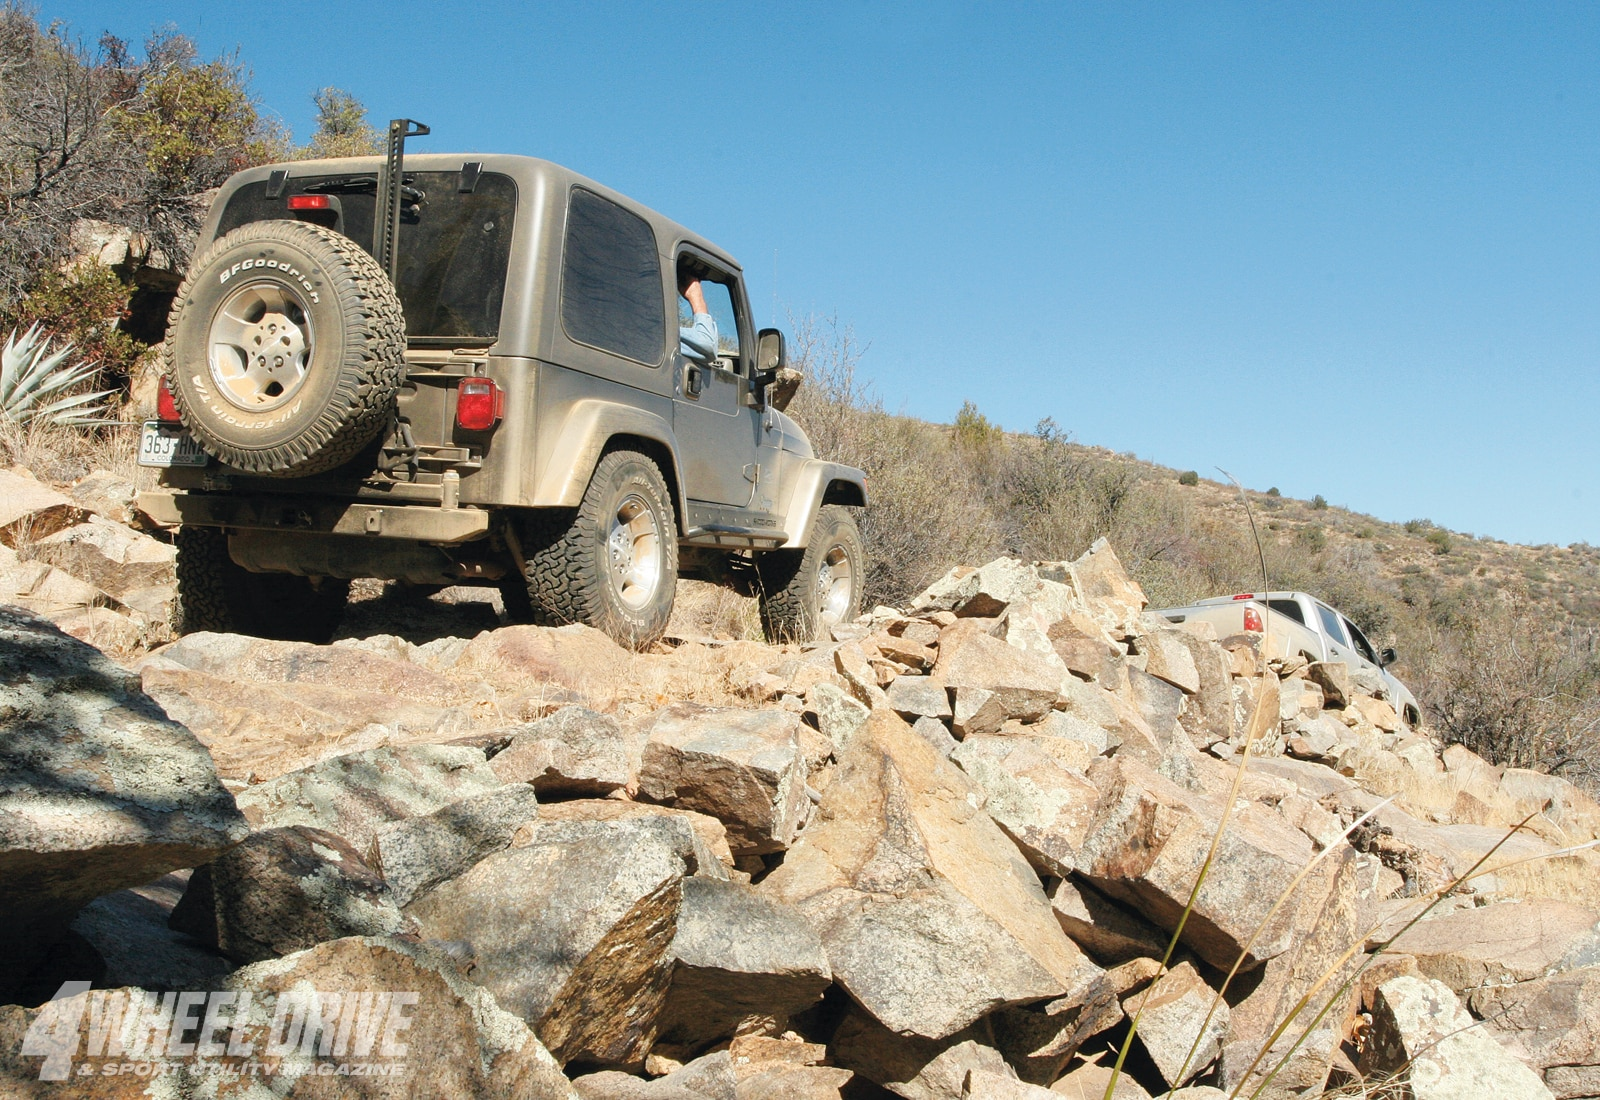 1004 4wd 08+bradshaw mountains+2003 jeep wrangler